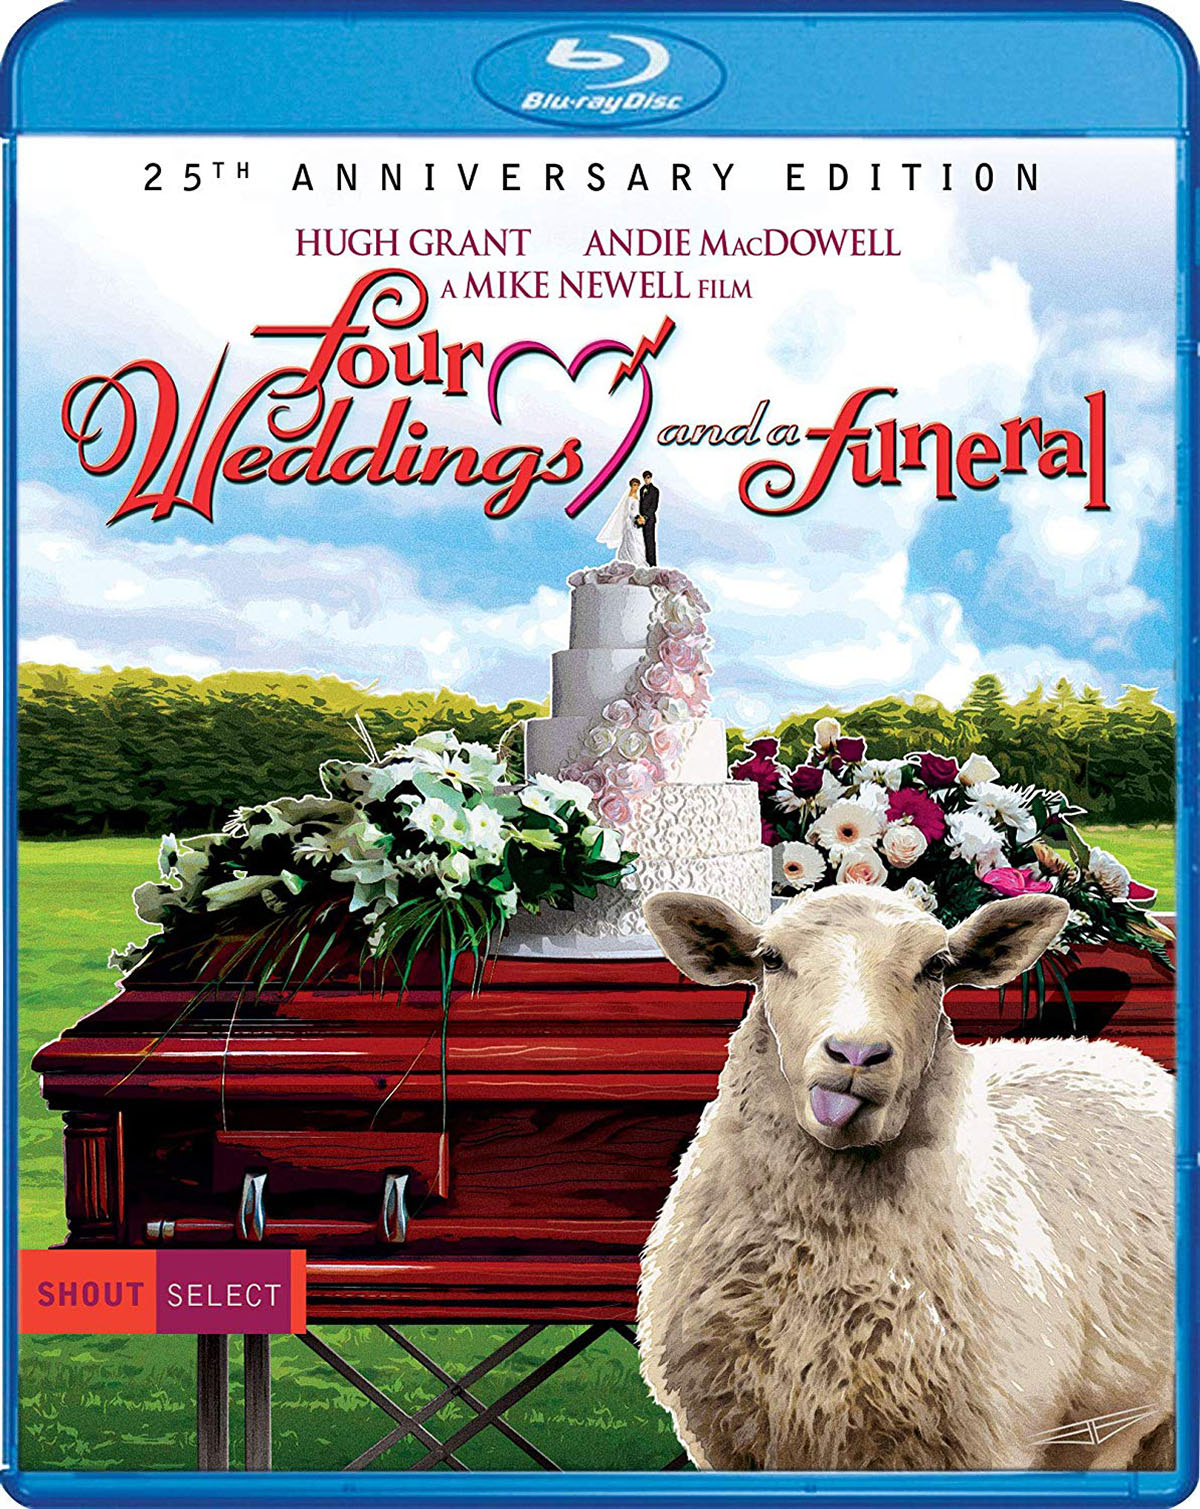 Review: Mike Newell's Four Weddings and a Funeral on Shout